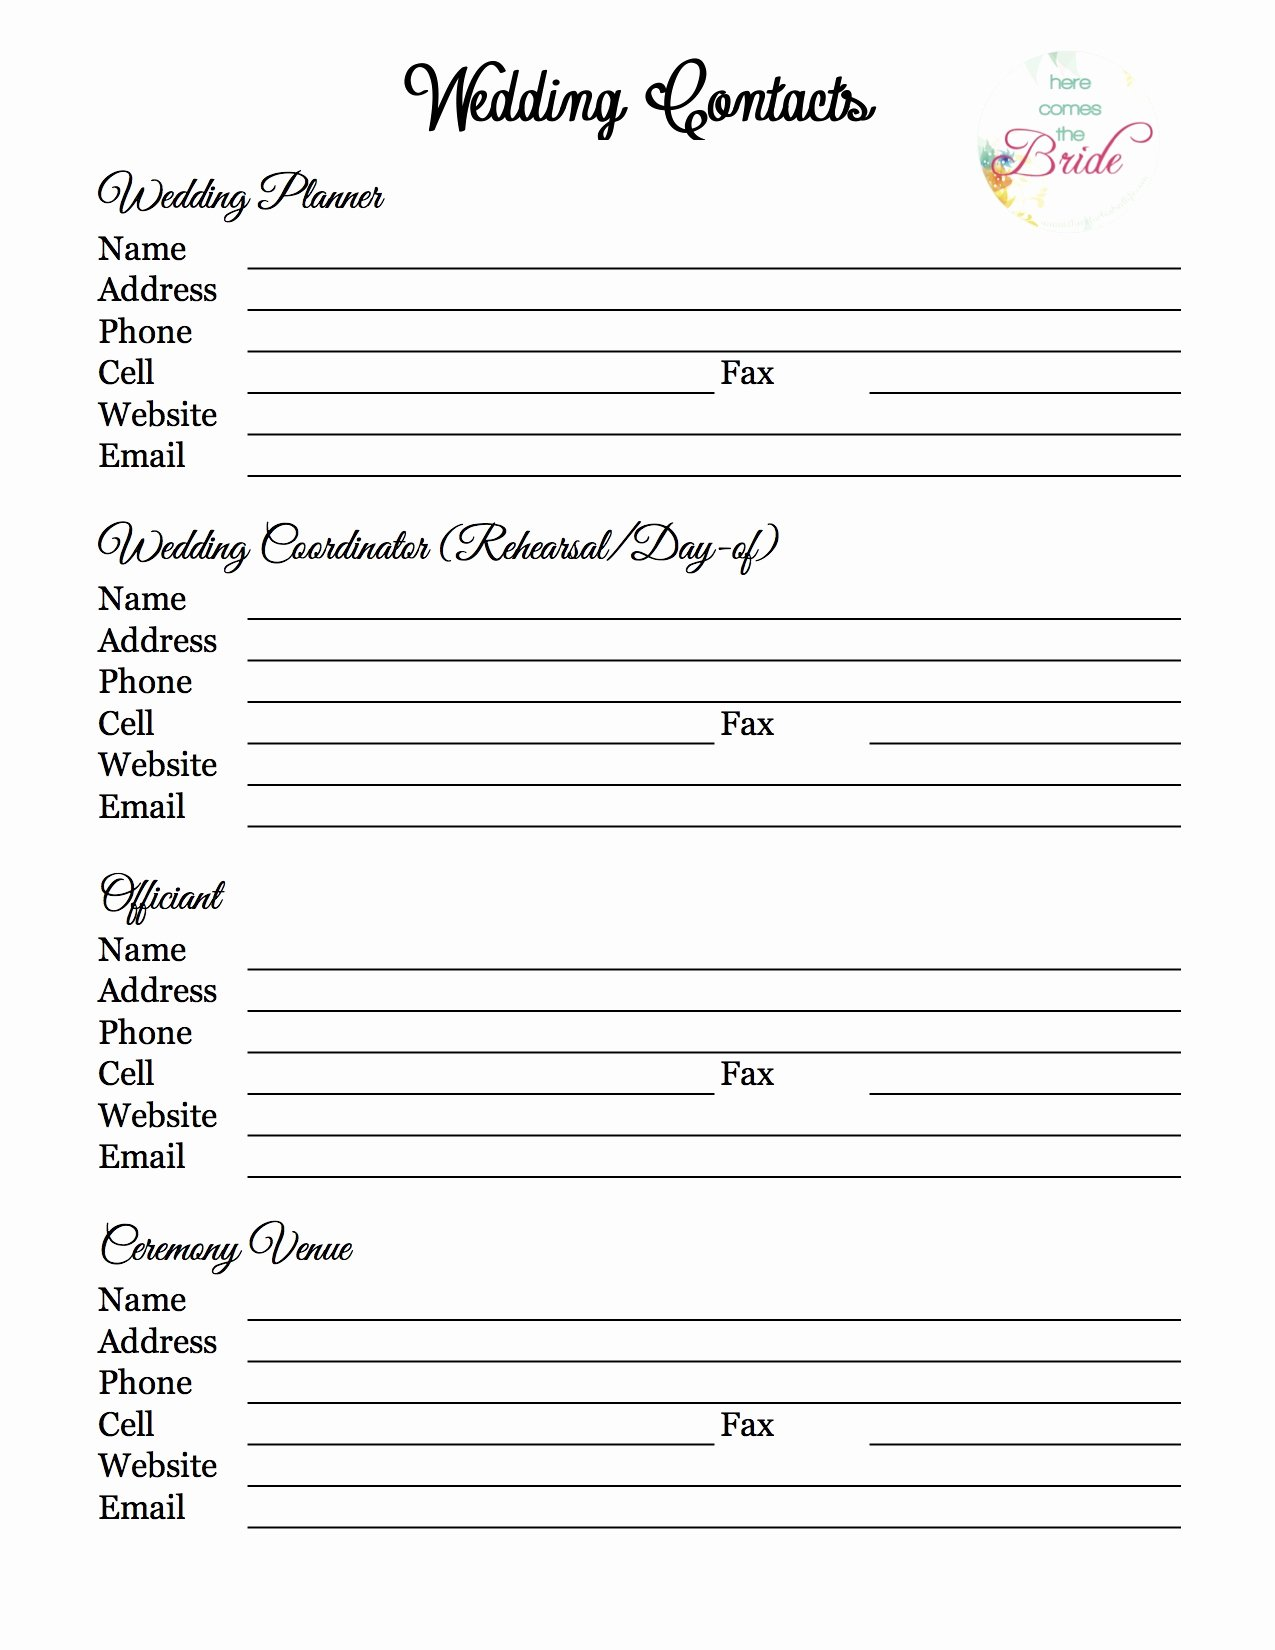 Wedding Planner Template Free Inspirational Wedding Planner with Free Printables – Refurbished